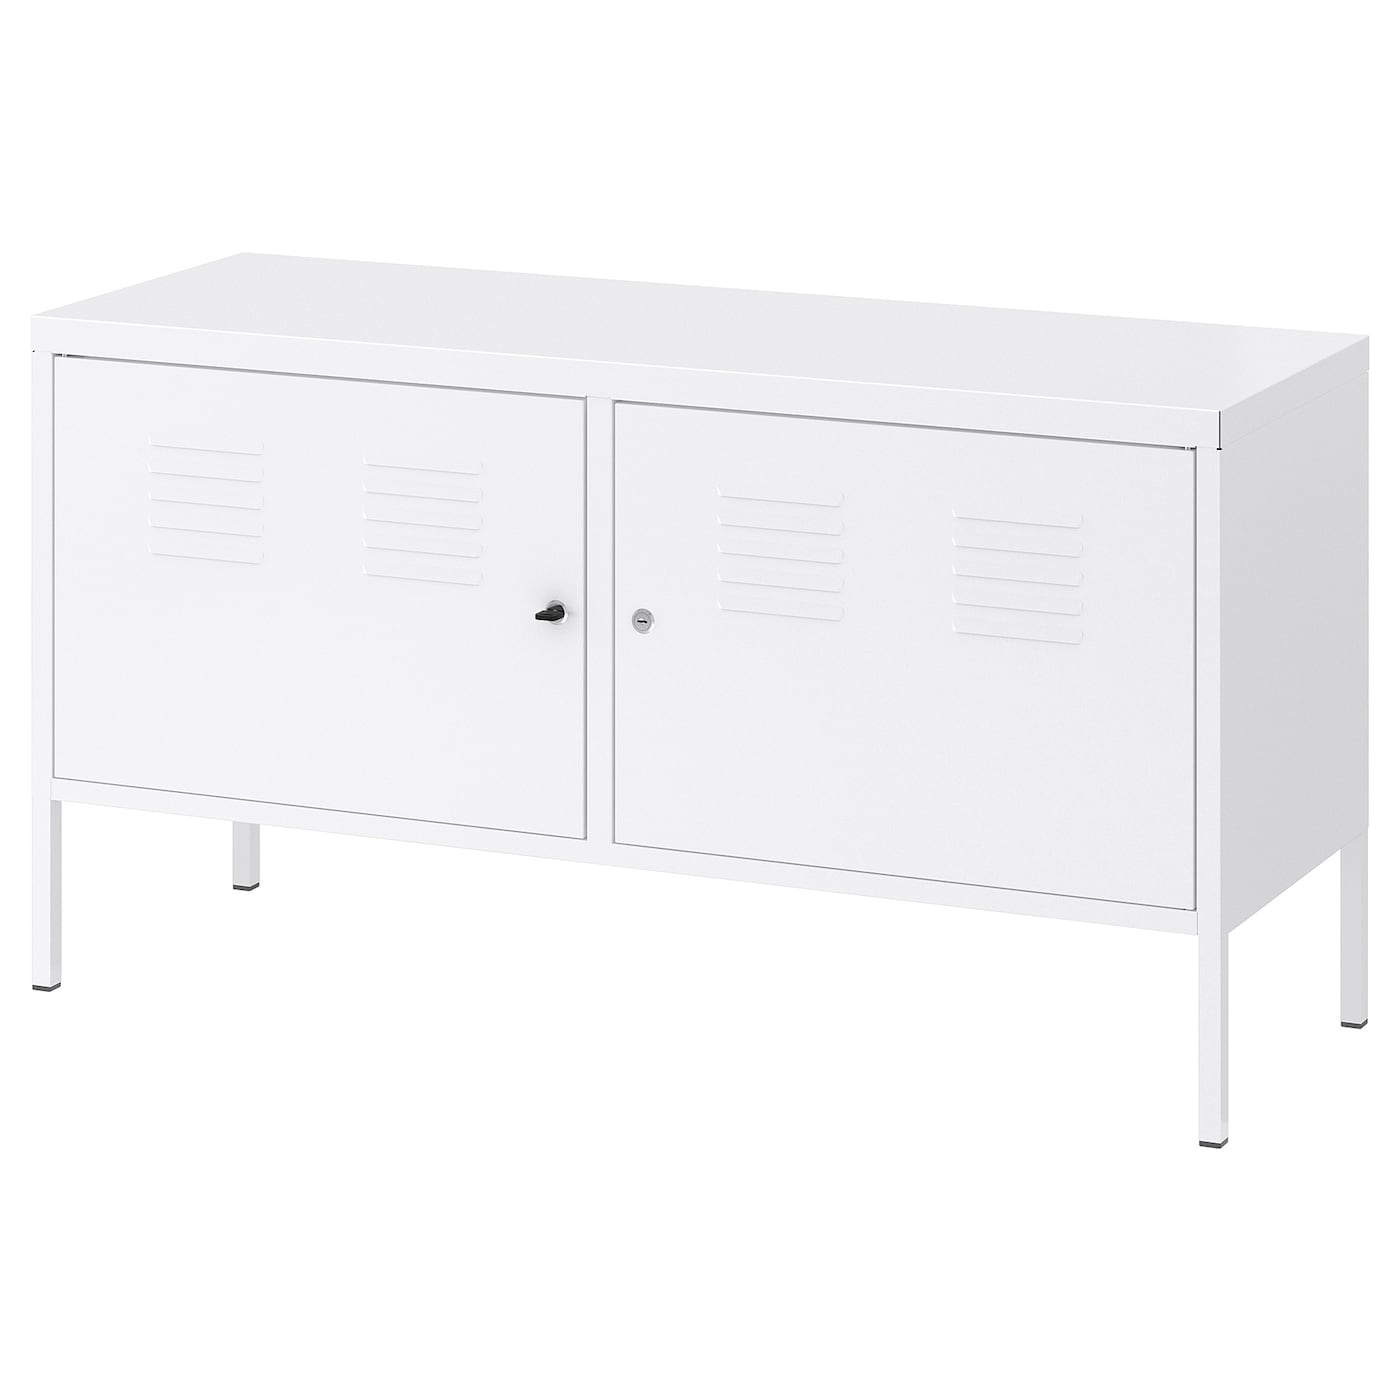 Ikea Ps Cabinet White Ikea Switzerland